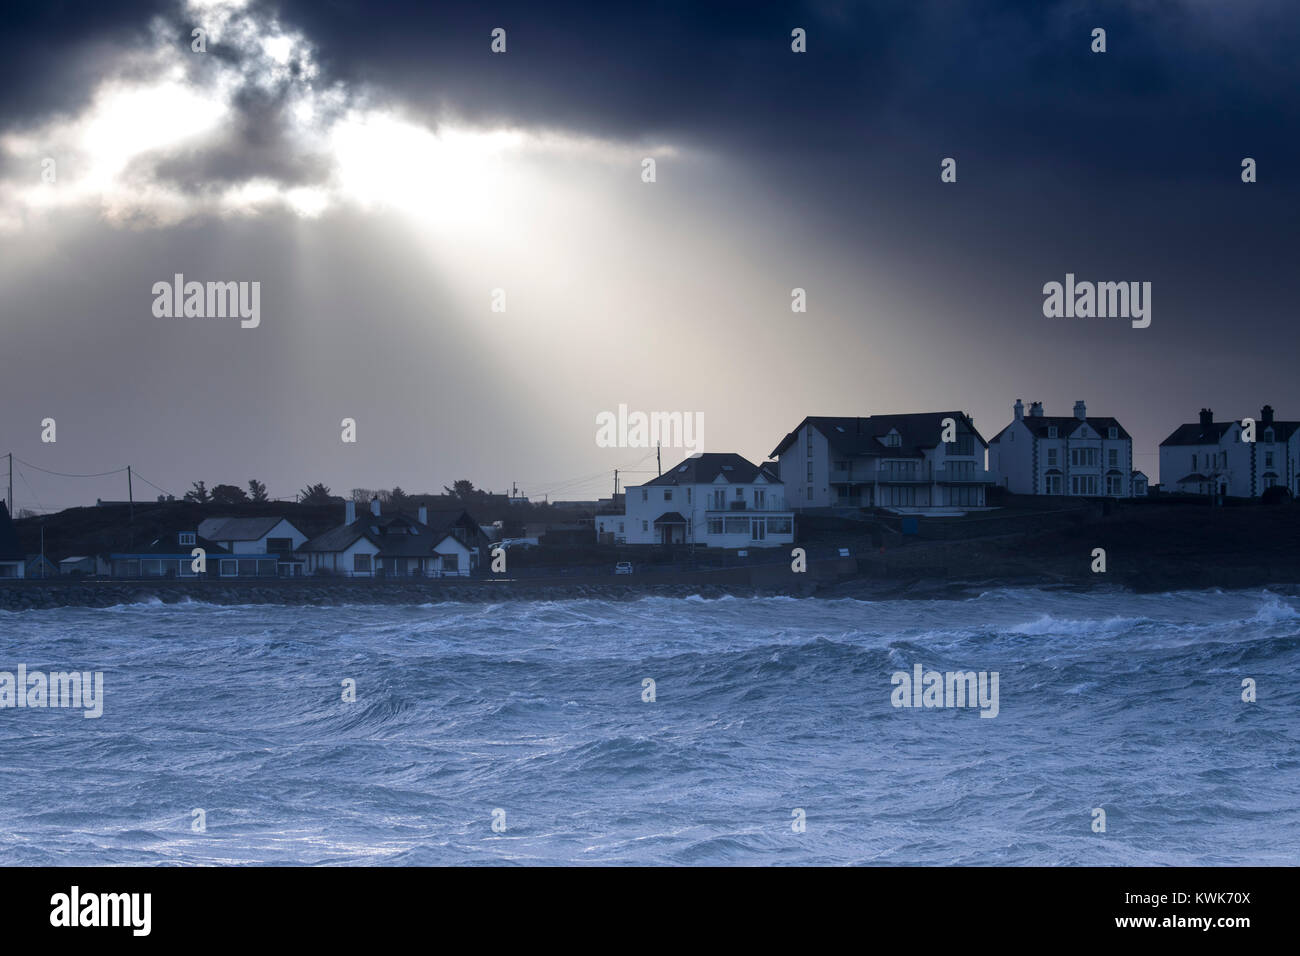 Coastal flooding and huge waves crash into the small isolated Trearddur Bay on the Isle of Anglesey during storm - Stock Image